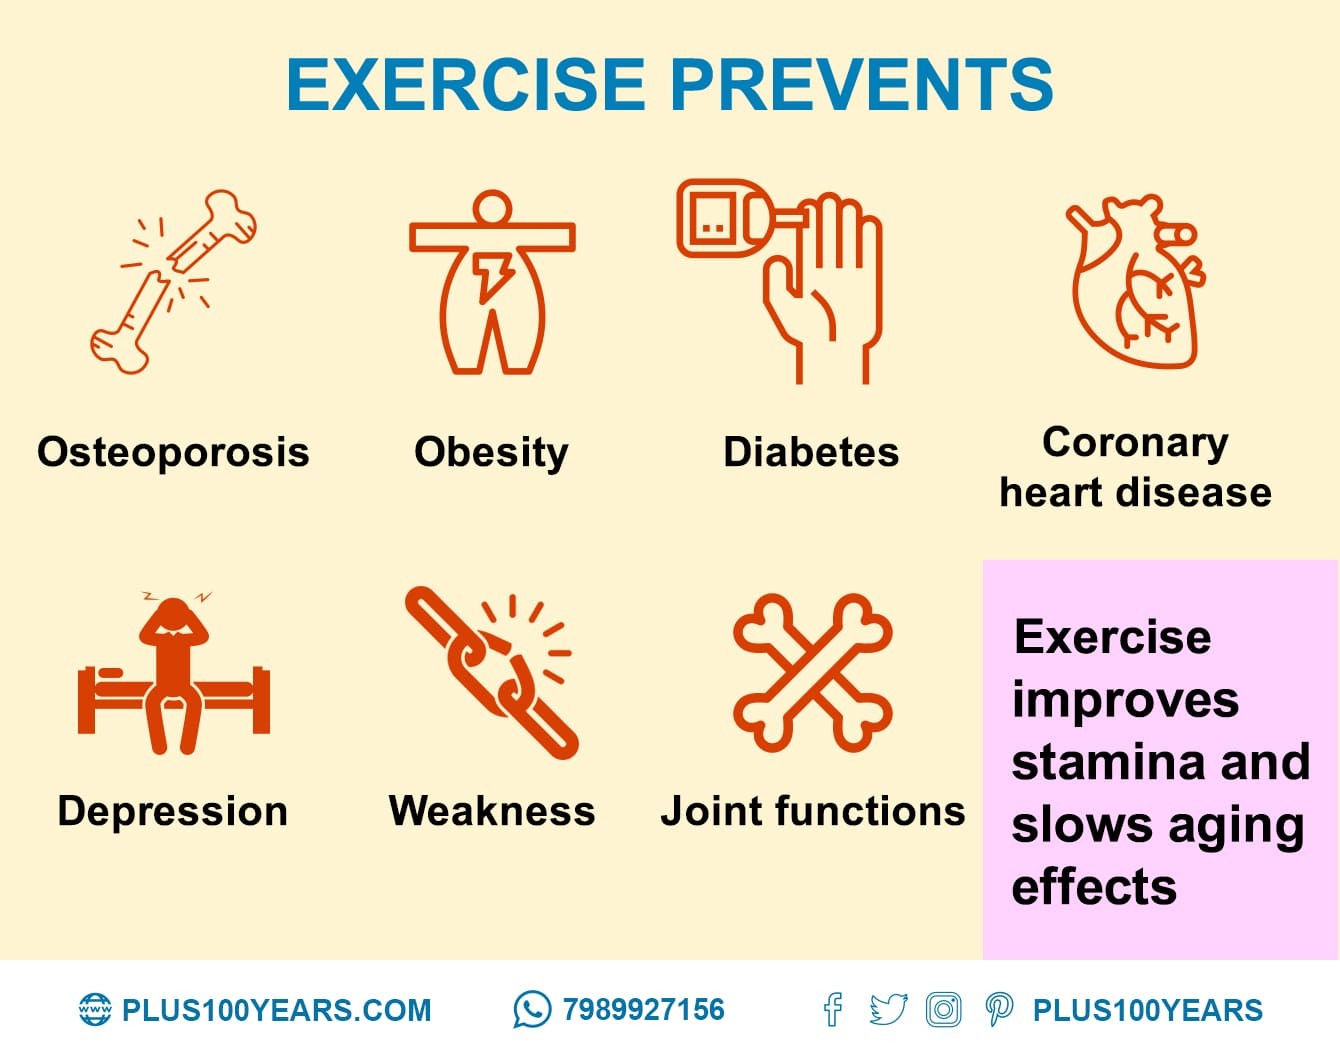 Exercise Prevents